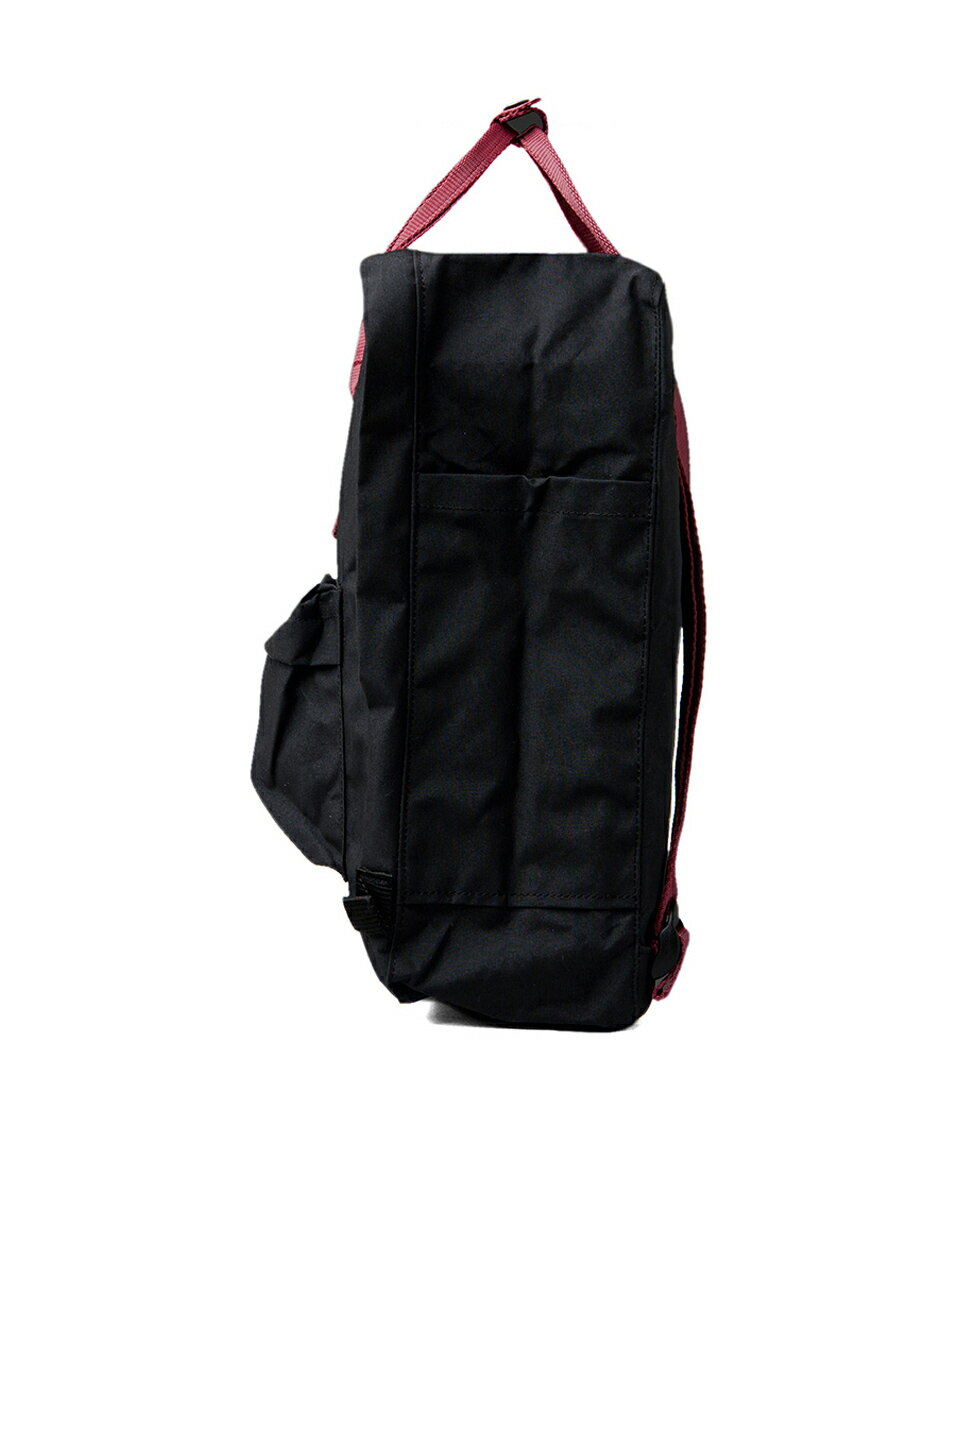 【Fjallraven Kanken 】Kånken Classic 550-326 Black & Ox Red 黑公牛紅 2